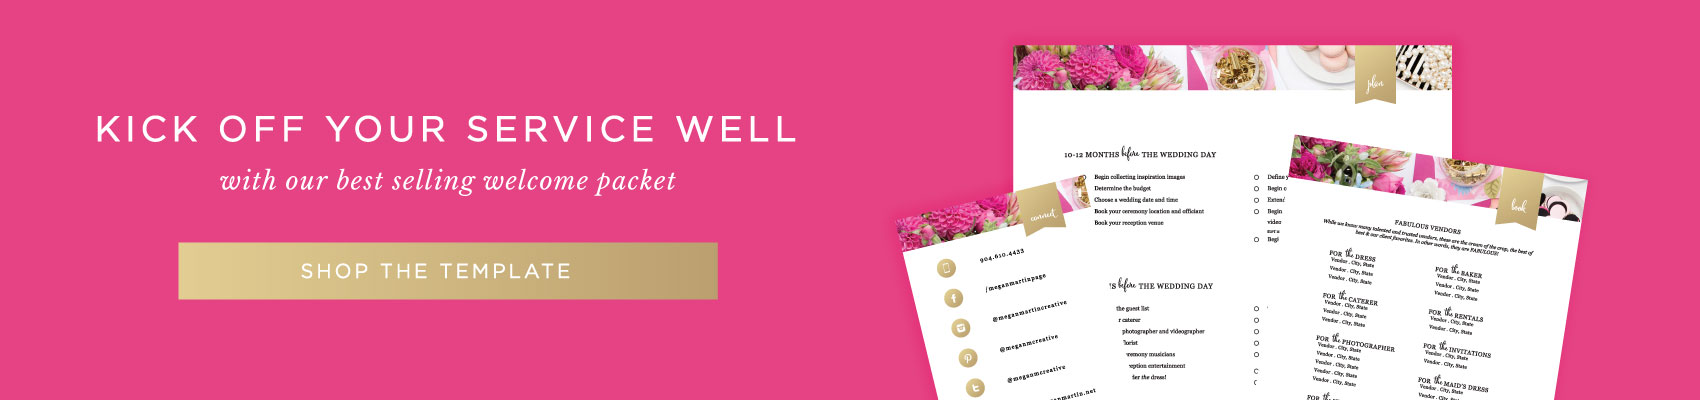 Brand Building Designing a Well Rounded Welcome Packet - Megan